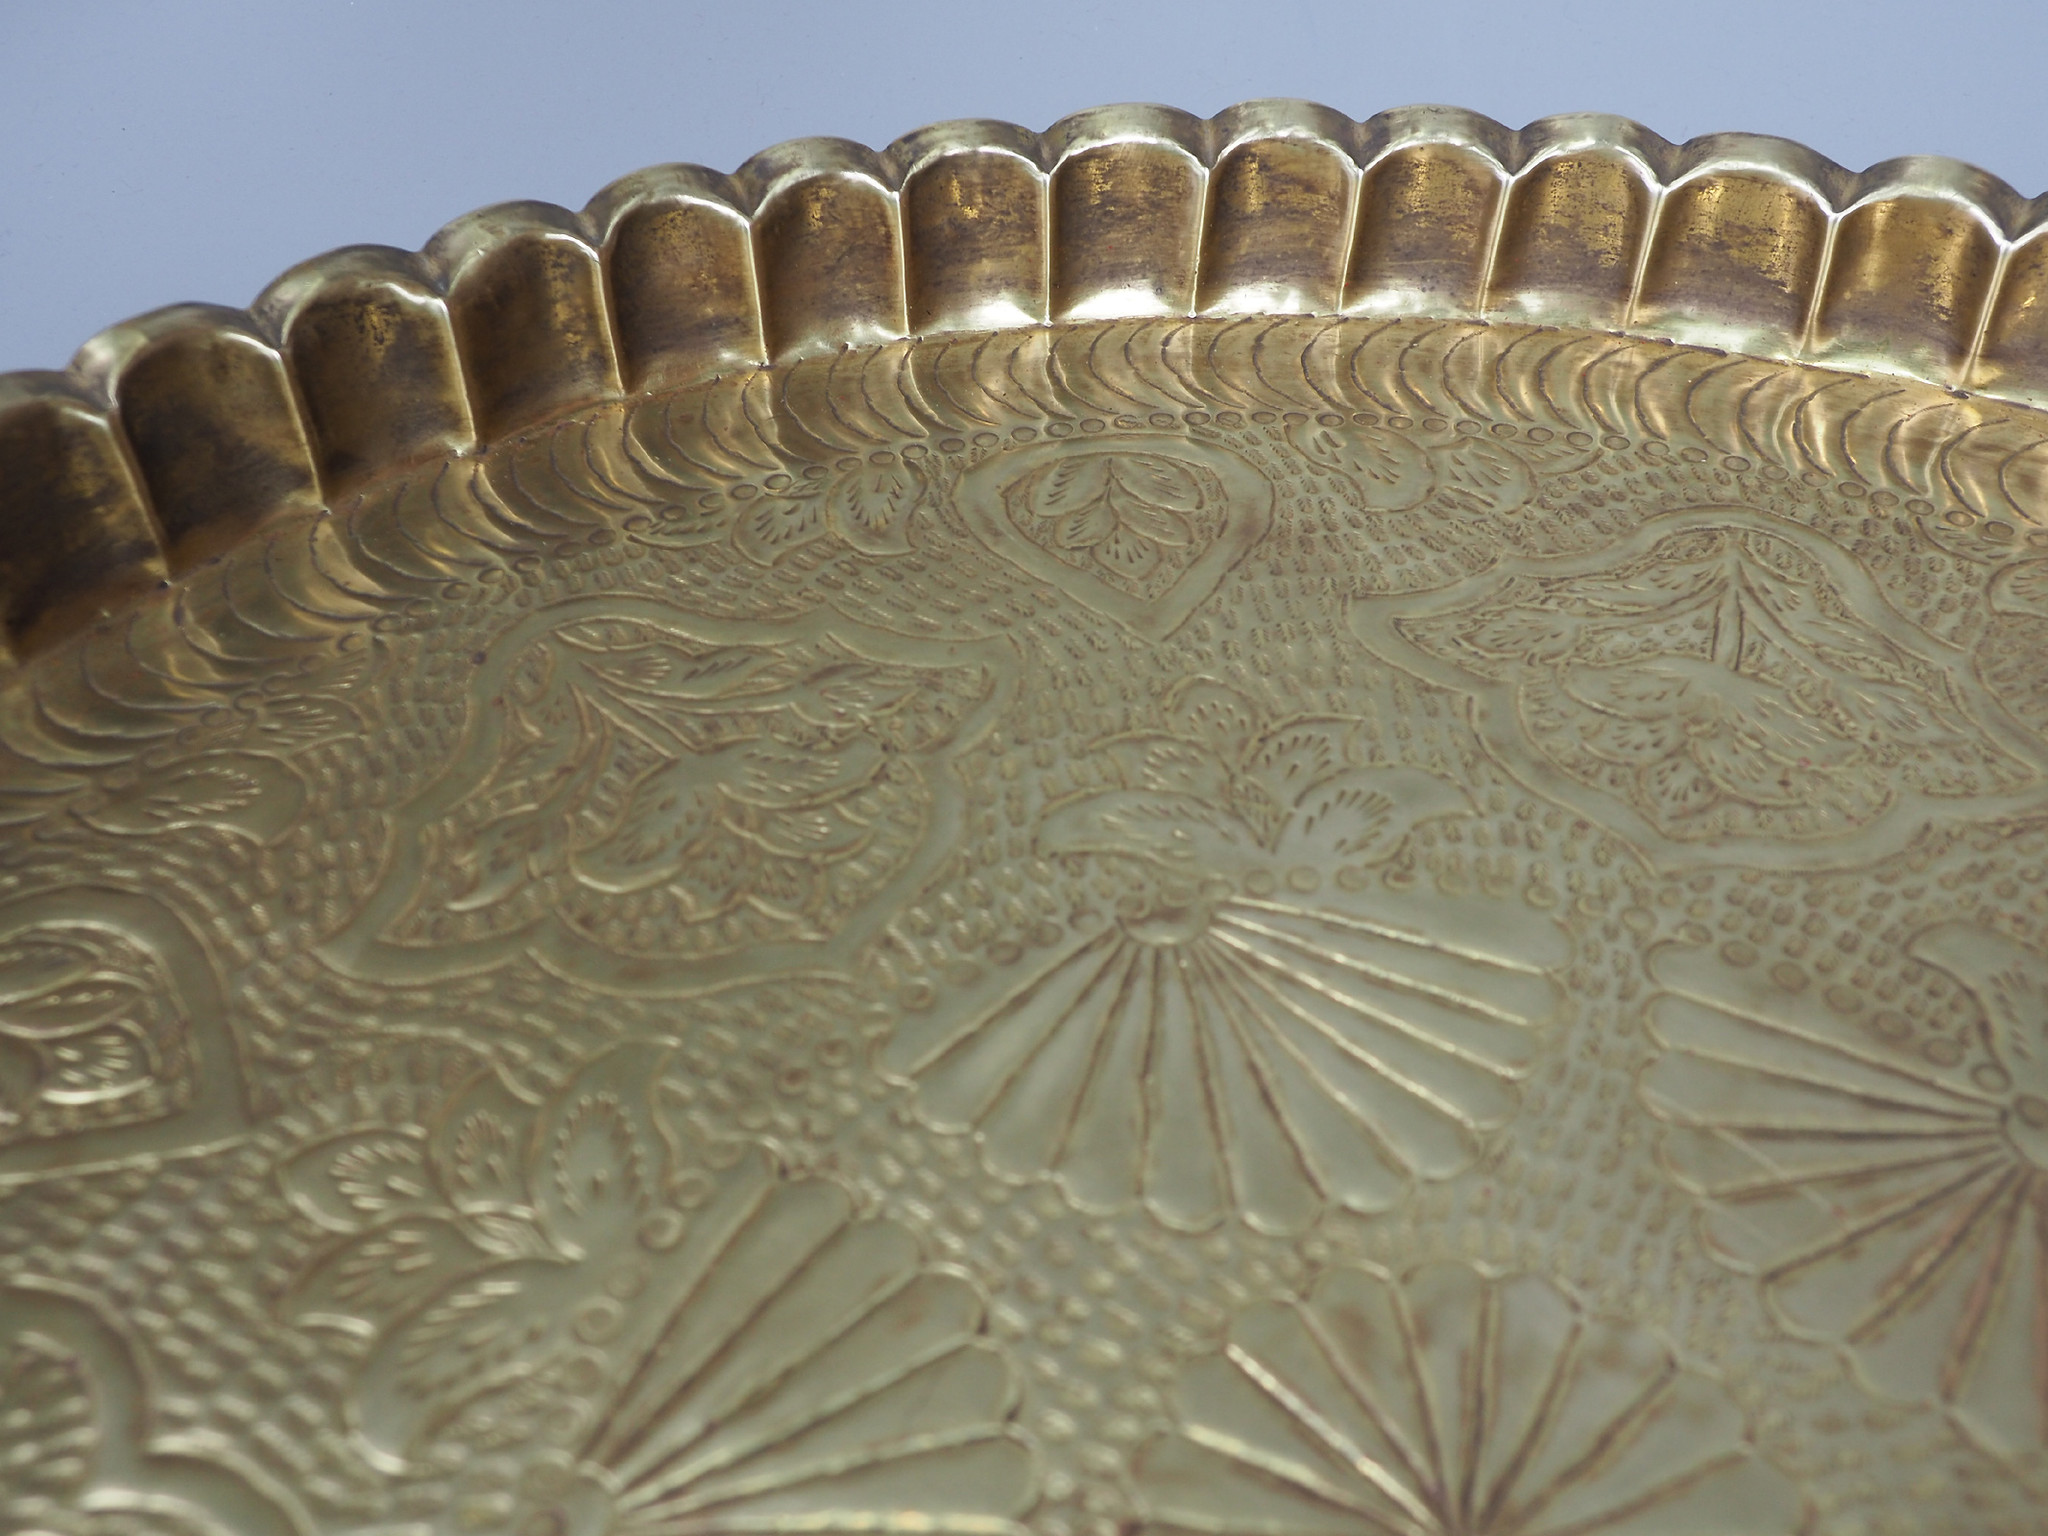 55 cm Antique ottoman orient Islamic  Hammer Engraved Brass table Tea table side table Tray from Afghanistan  No-21/F